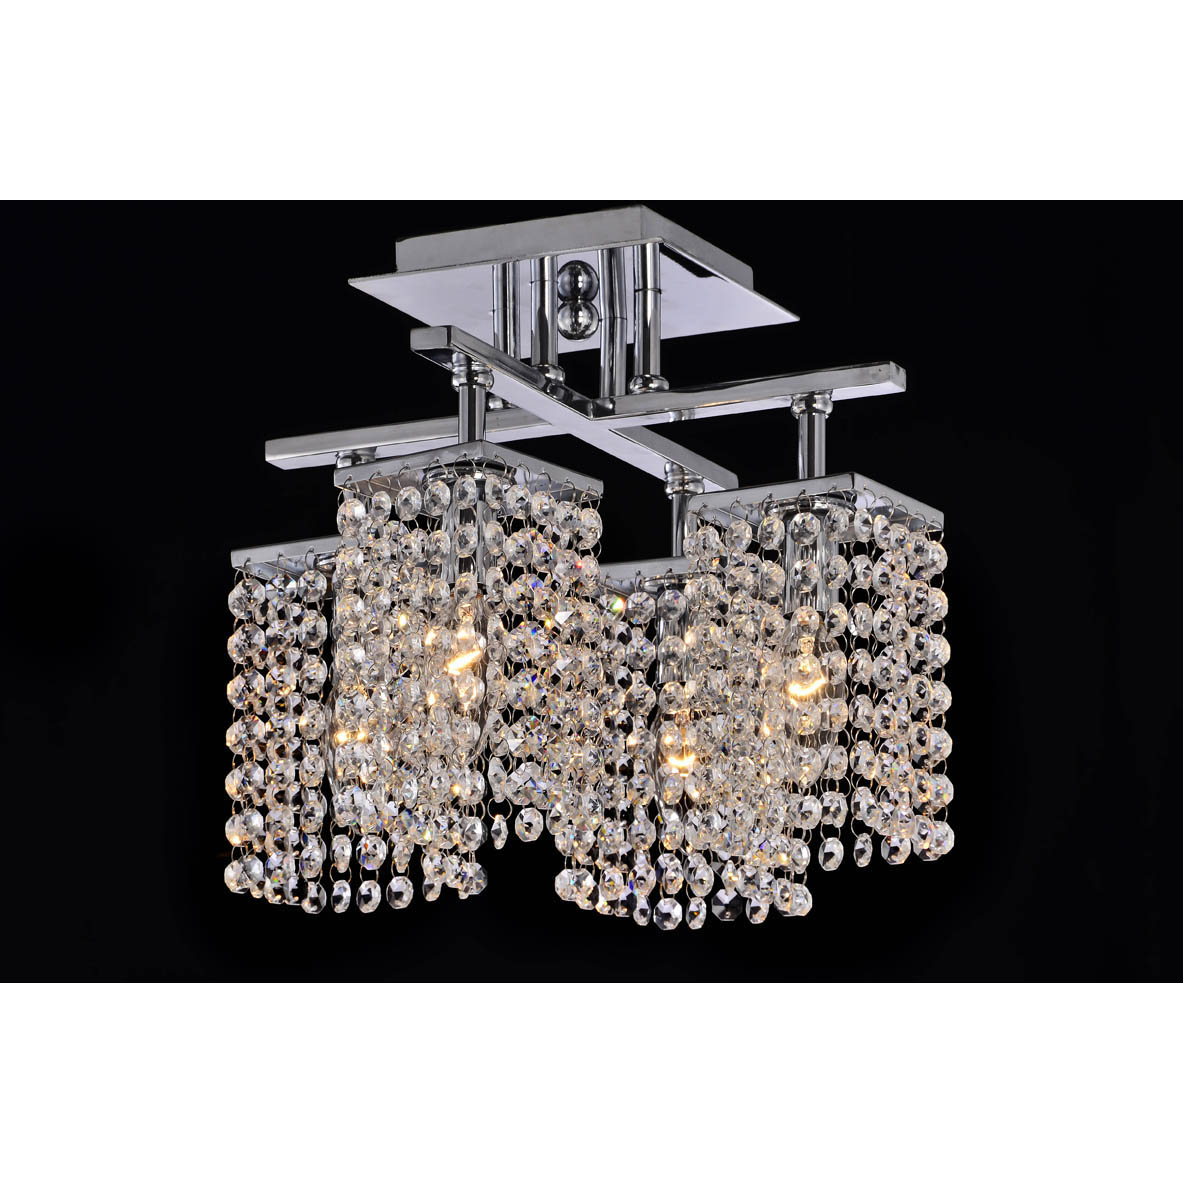 4 light chrome and crystal ceiling chandelier 14339931 shopping big - Ceiling crystal chandelier ...